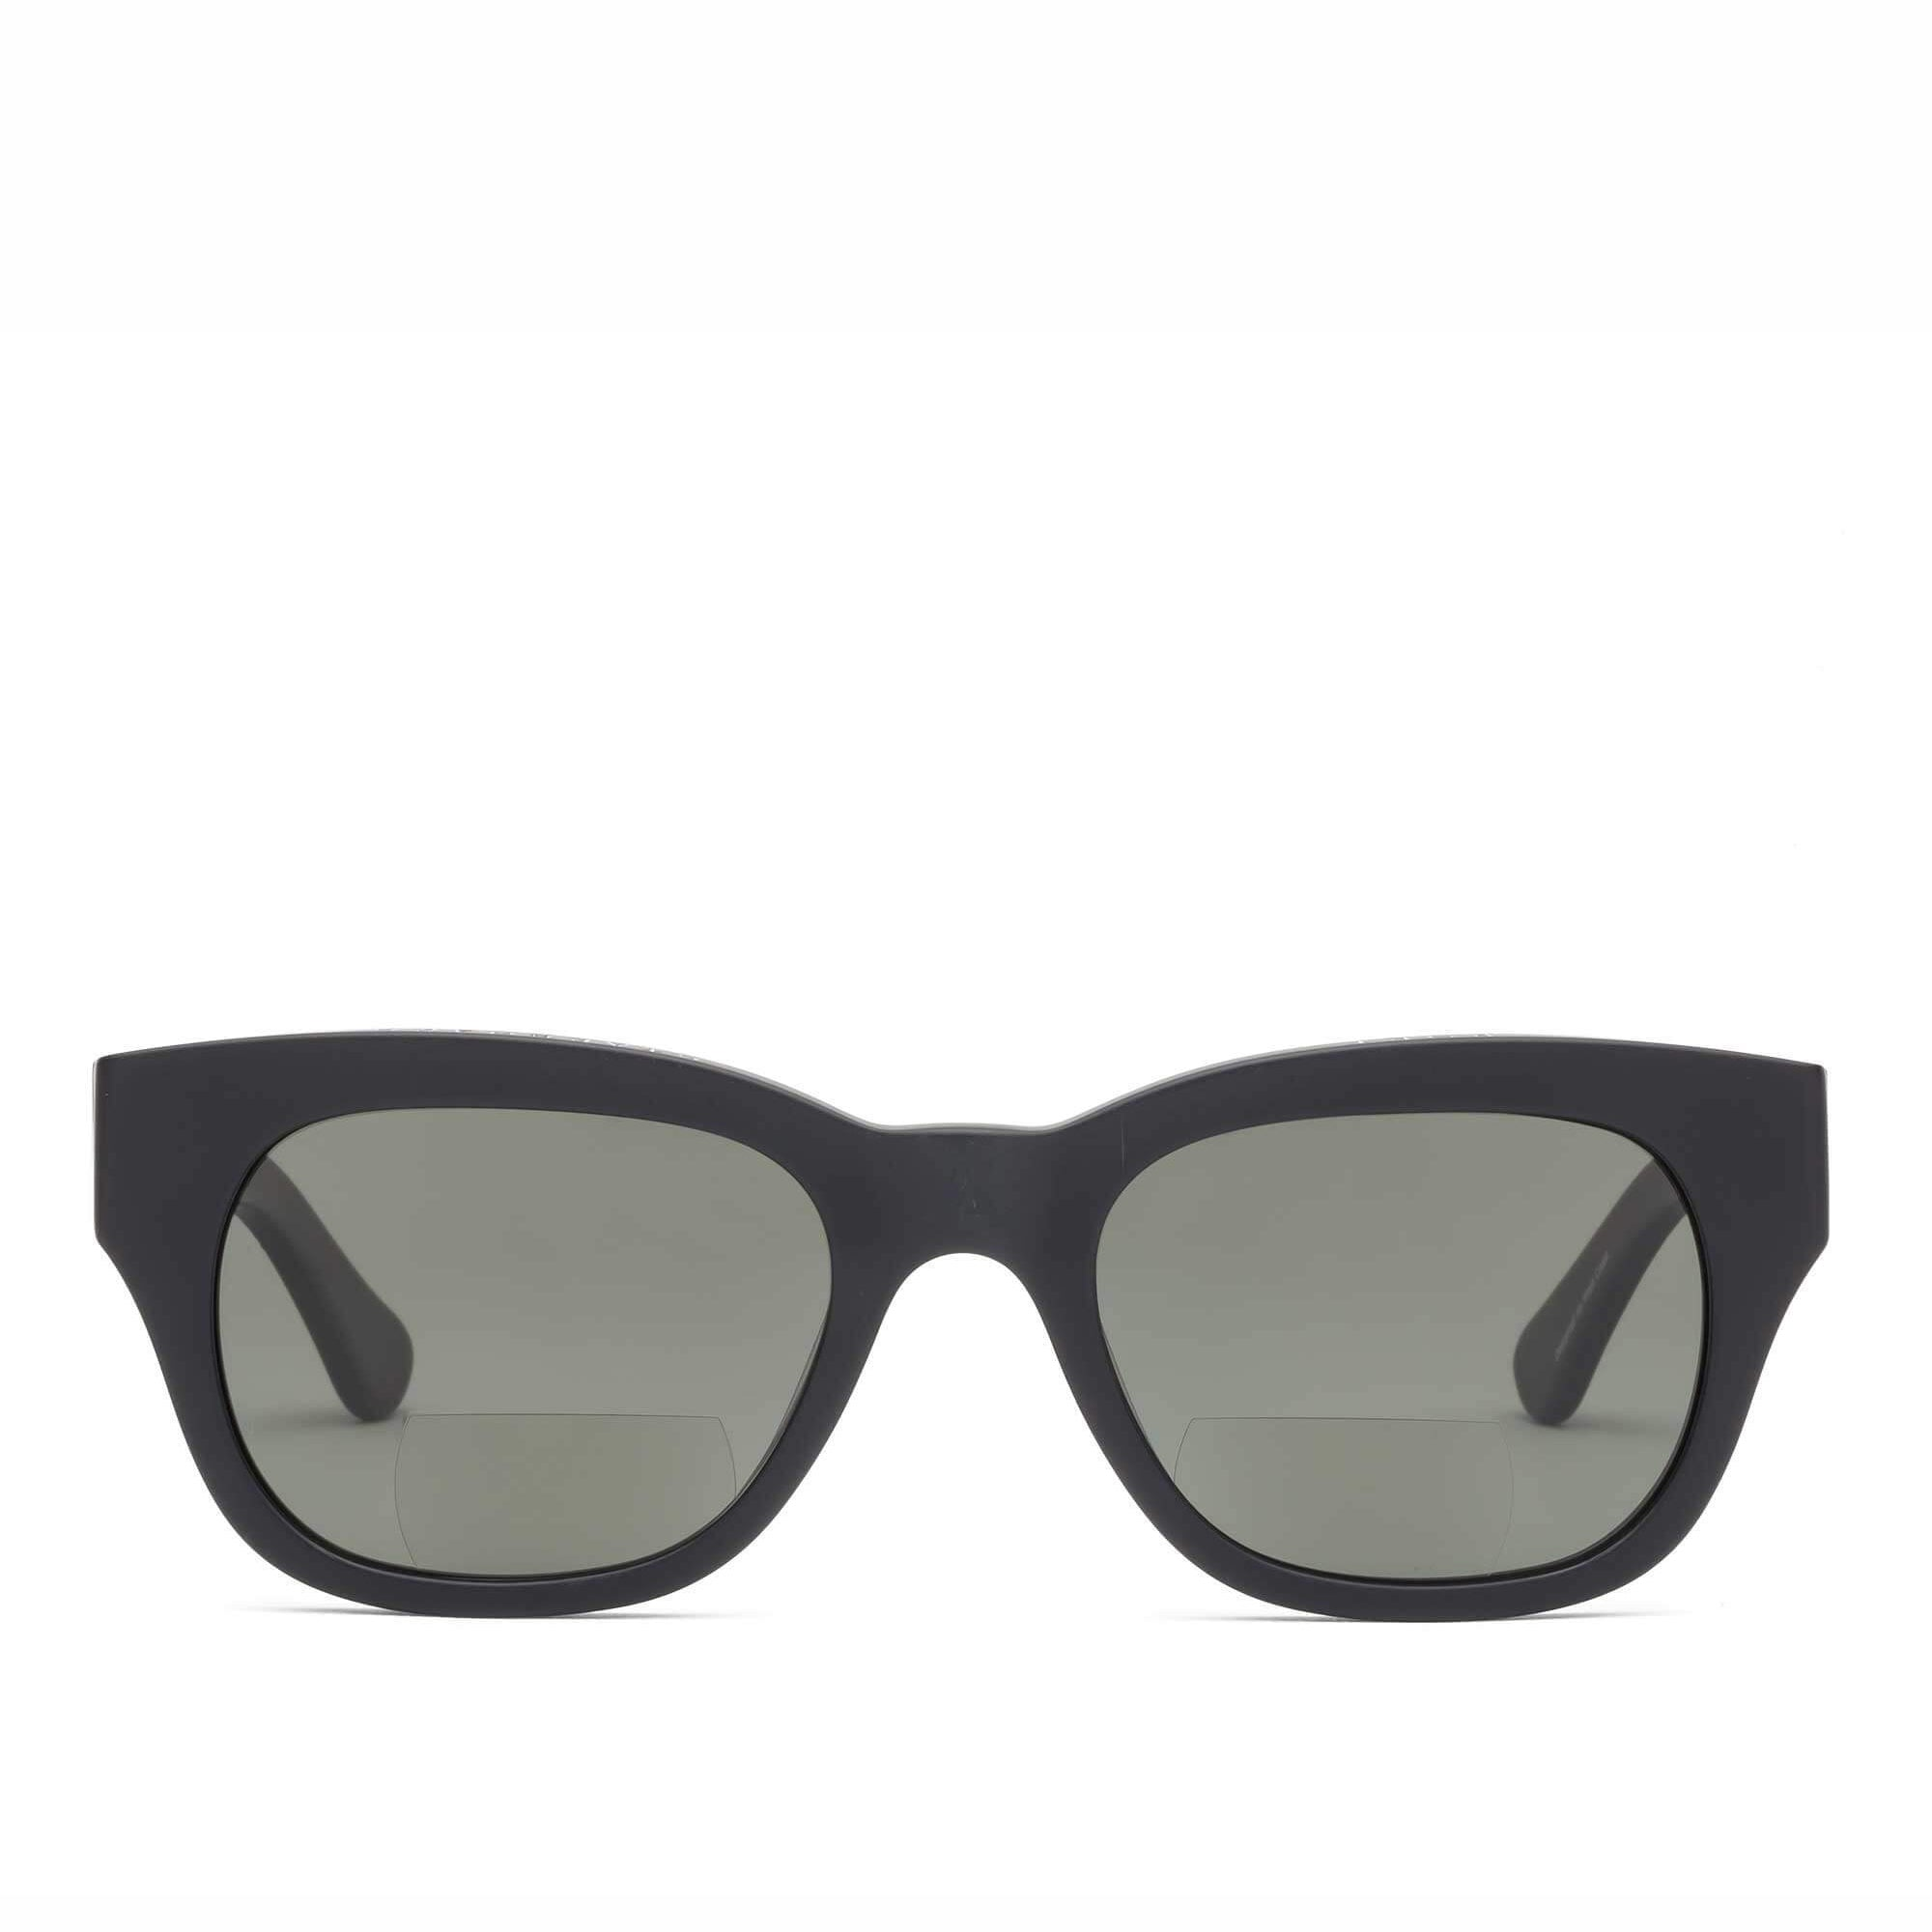 miklos sun readers by caddis eyewear - black matt